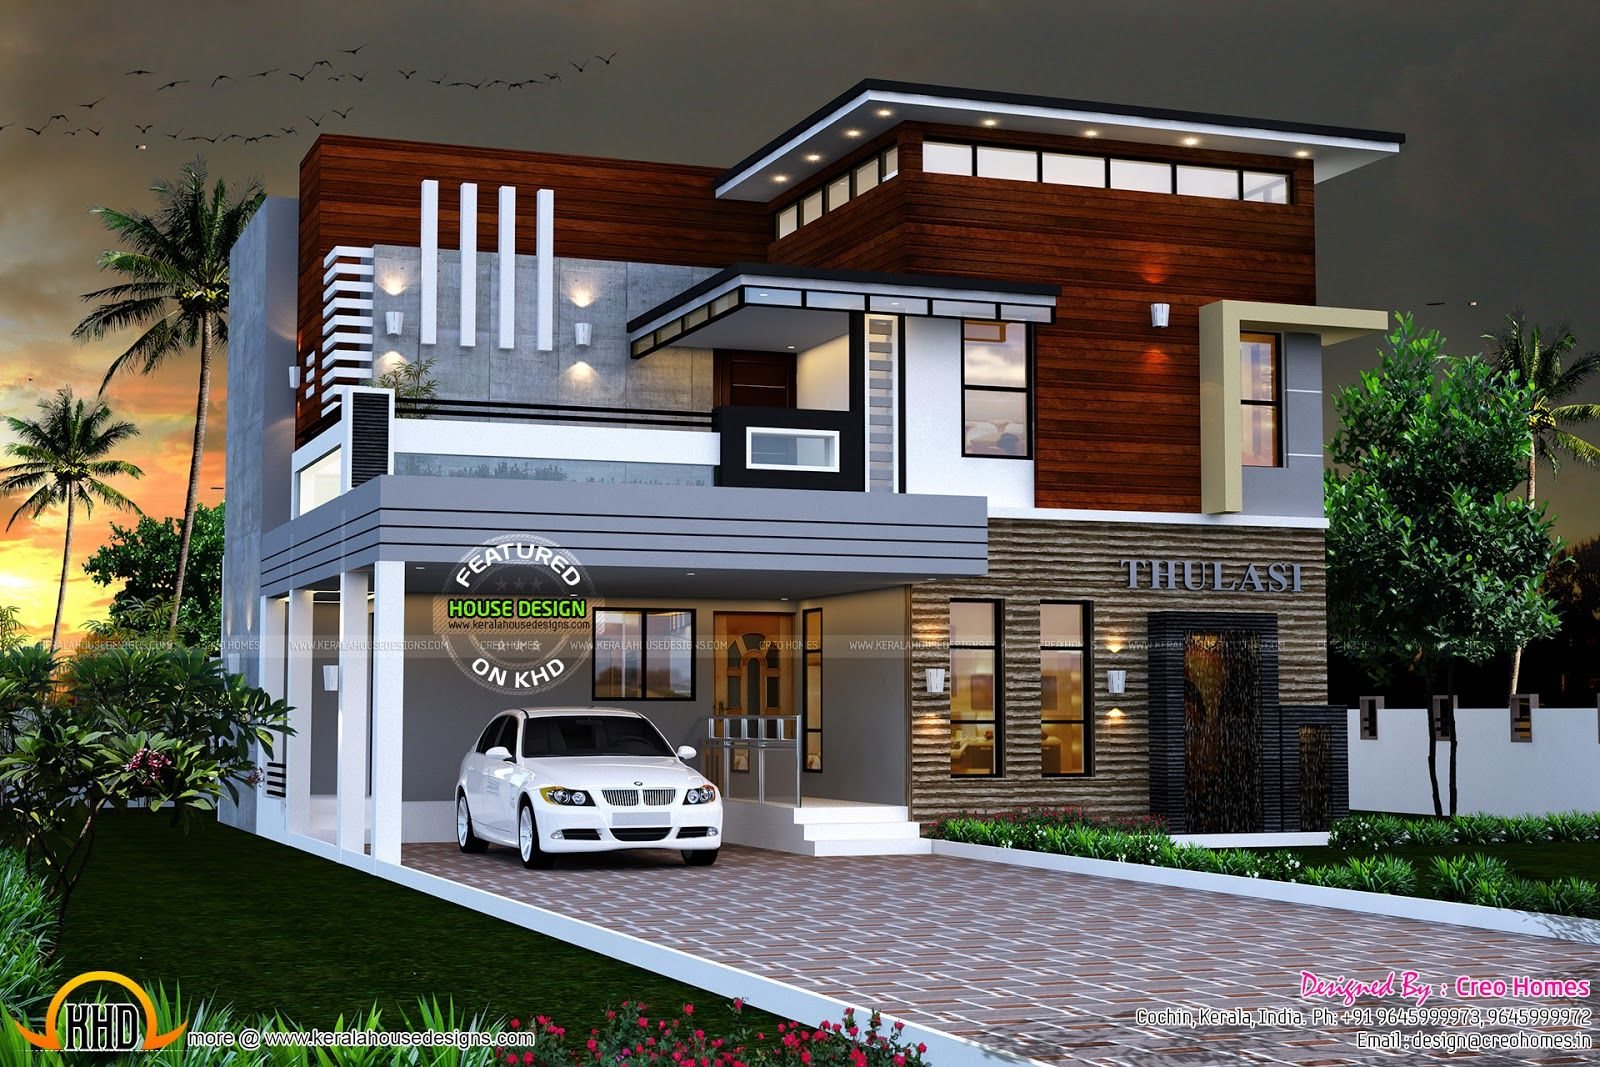 Eterior design modern small house architecture building Best home builder websites